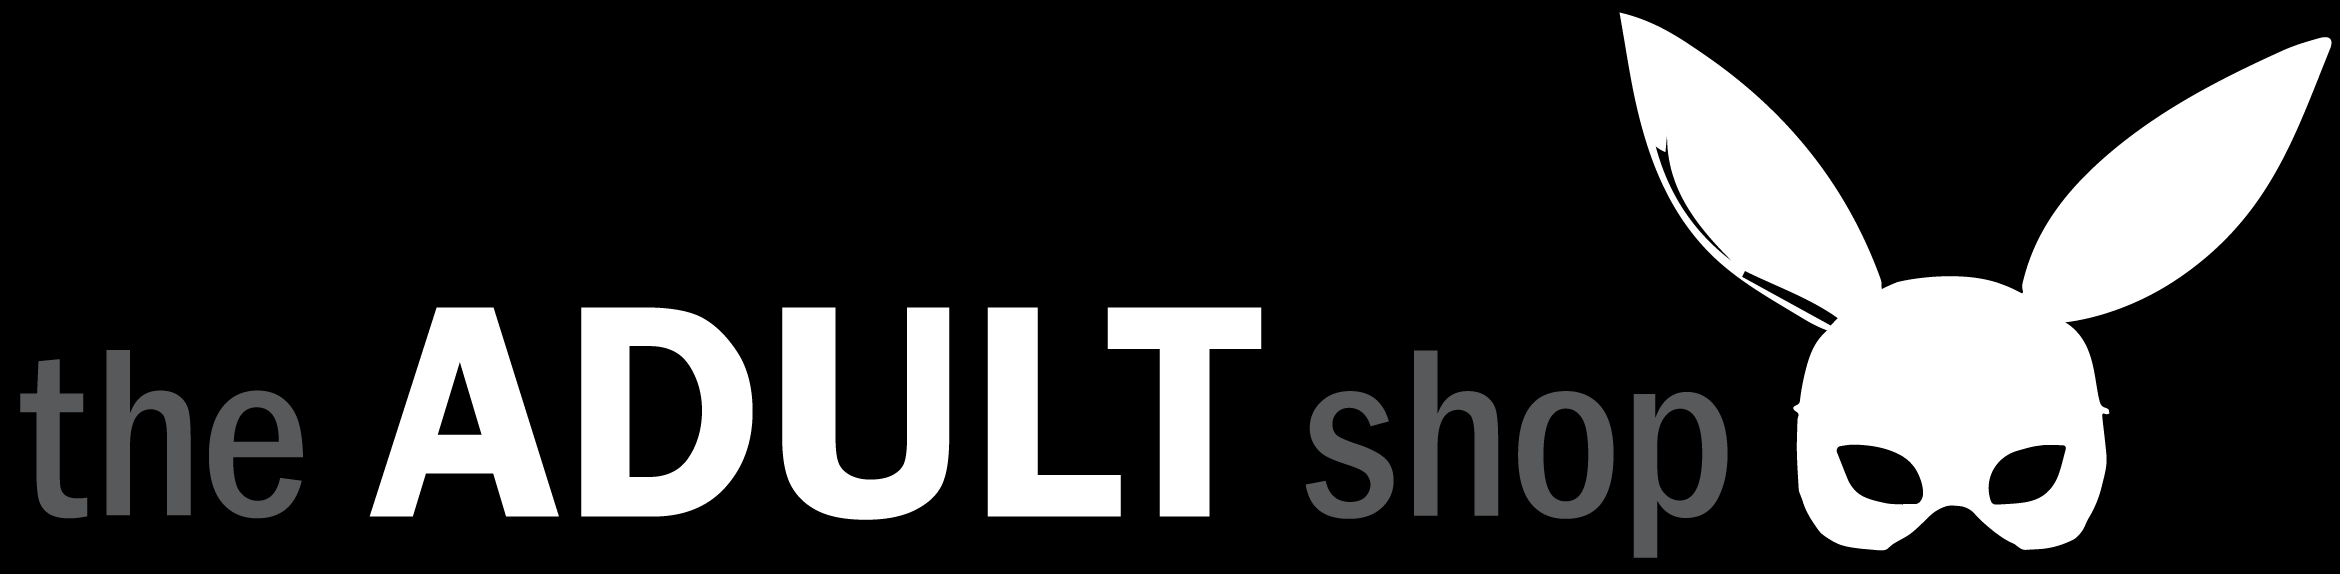 TheAdultShop.com Logo